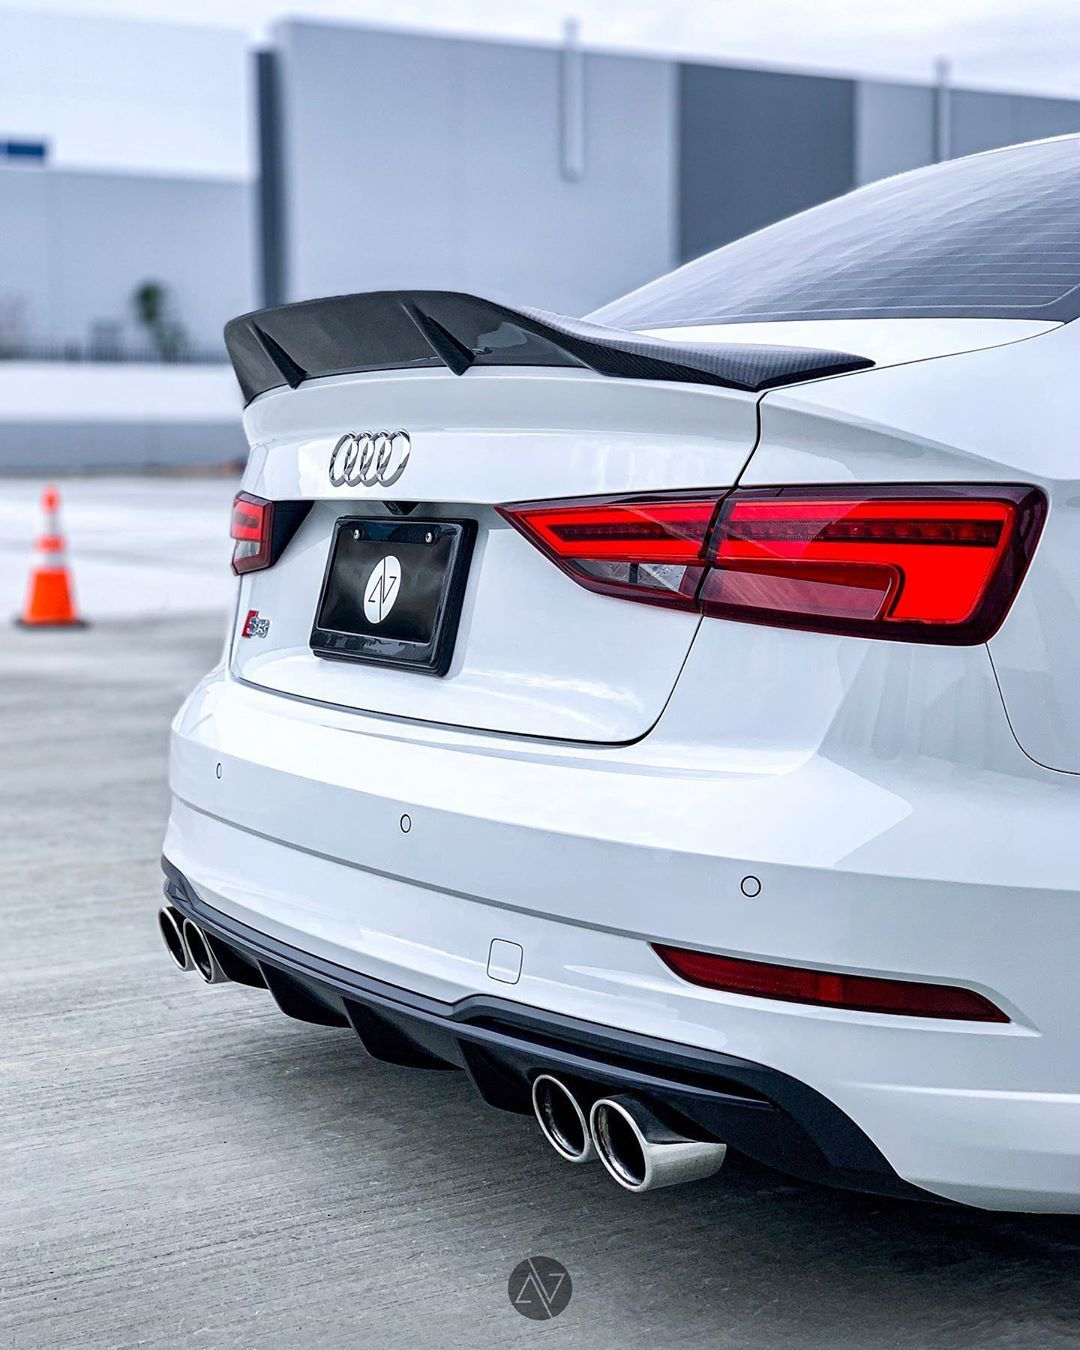 Abel S Audi On Instagram Who Else Rides With No Plates Audi S3 Quattro Abouts3 Audigramm Audiloverr Eurowhip Onlyaudi In 2020 Audi Cars Audi Audi Rs3